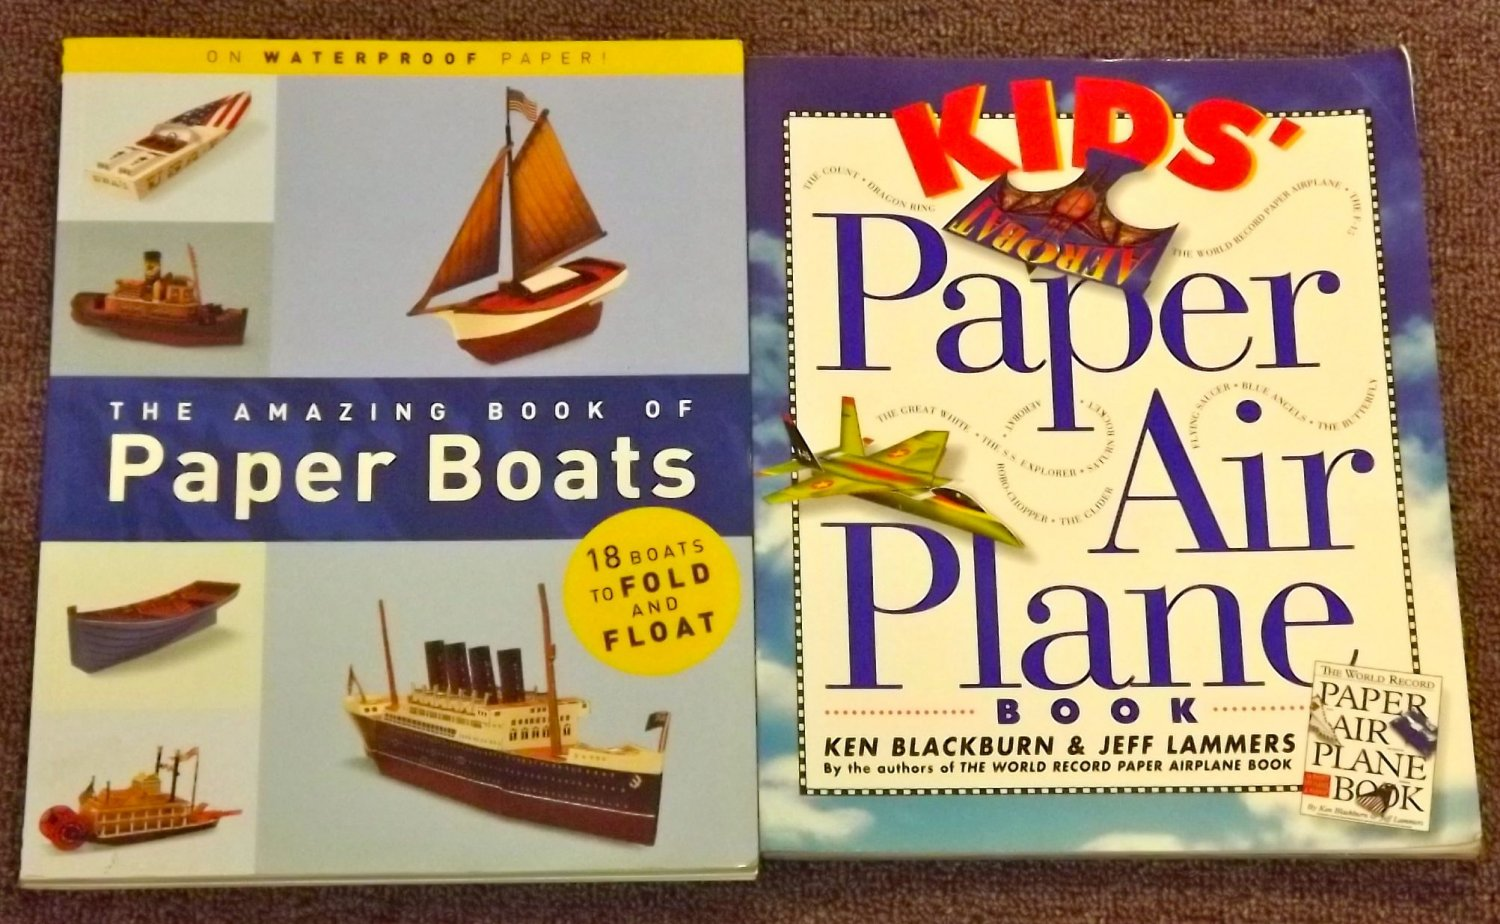 The Amazing Book of Paper Boats and Kids Paper Air Plane Book